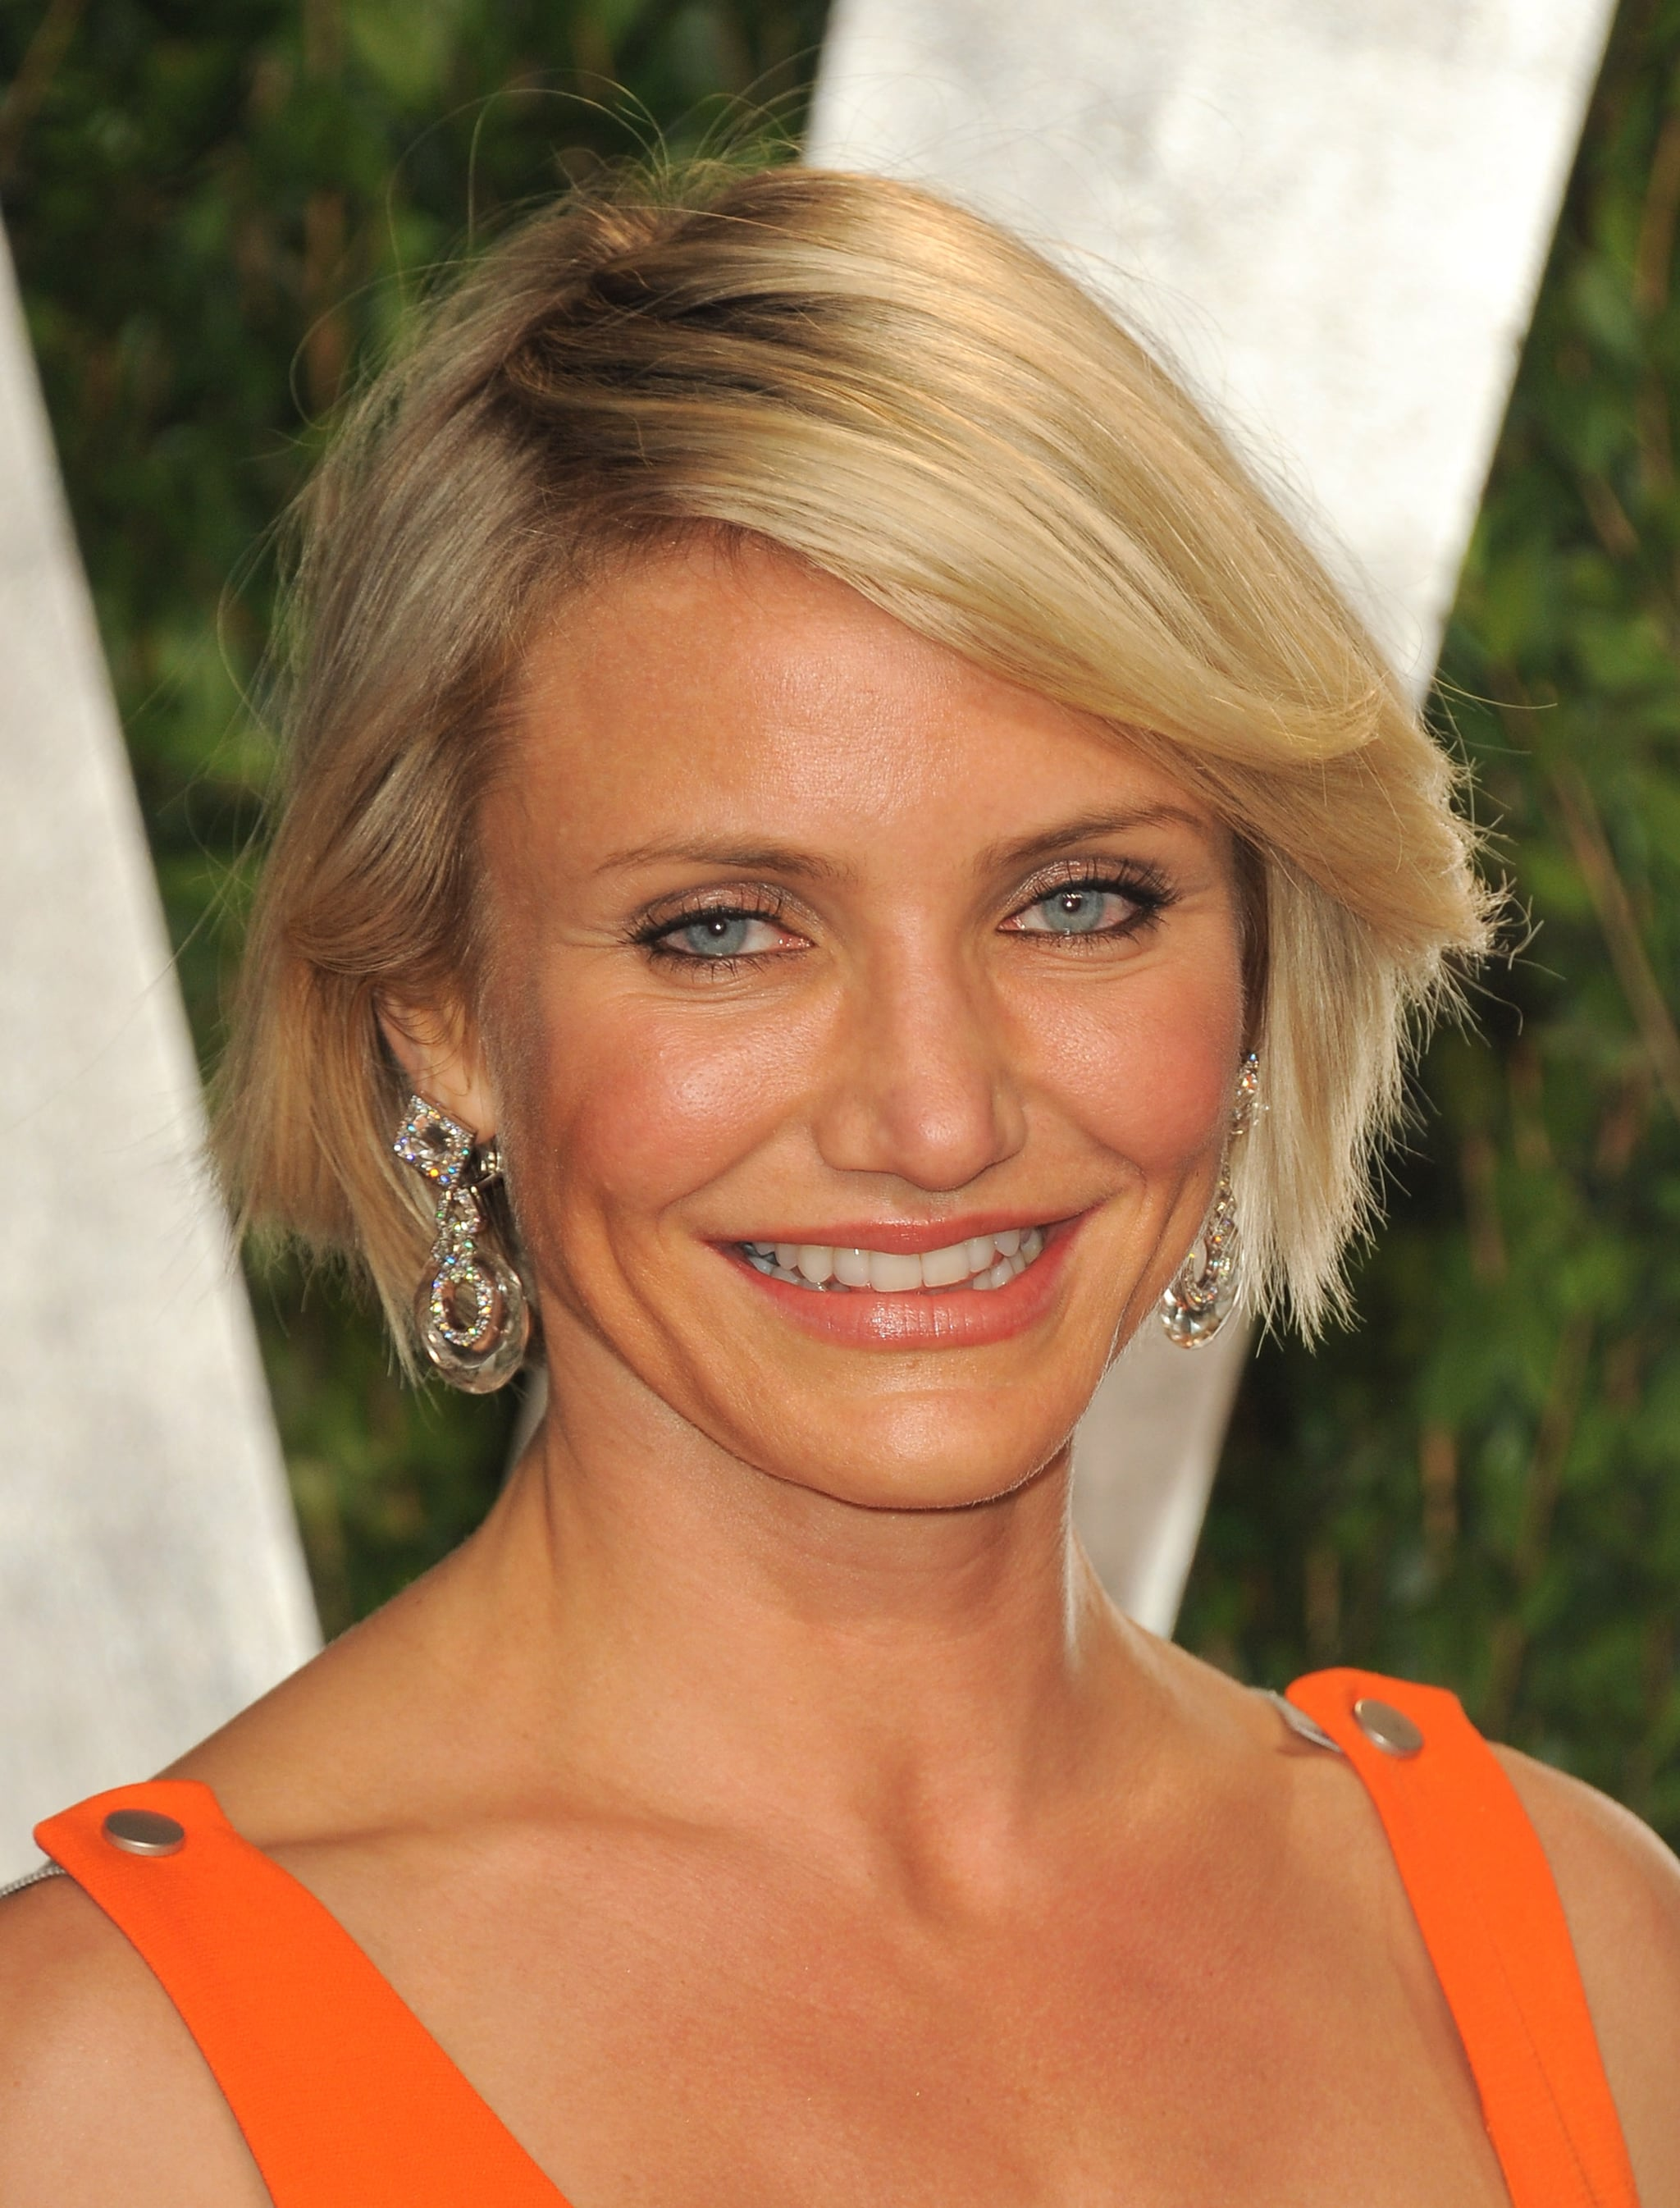 Cameron Diaz up close at the Vanity Fair party.